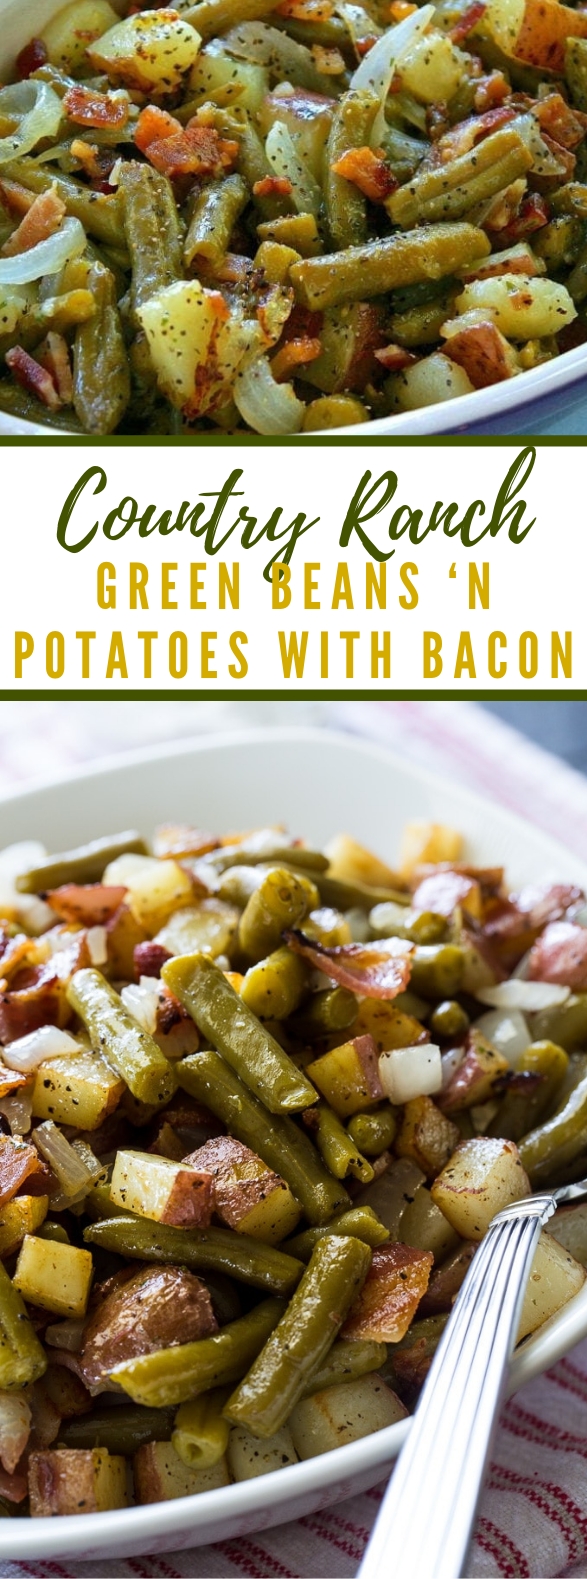 Country Ranch Green Beans 'n Potatoes with Bacon #vegetarian #veggies